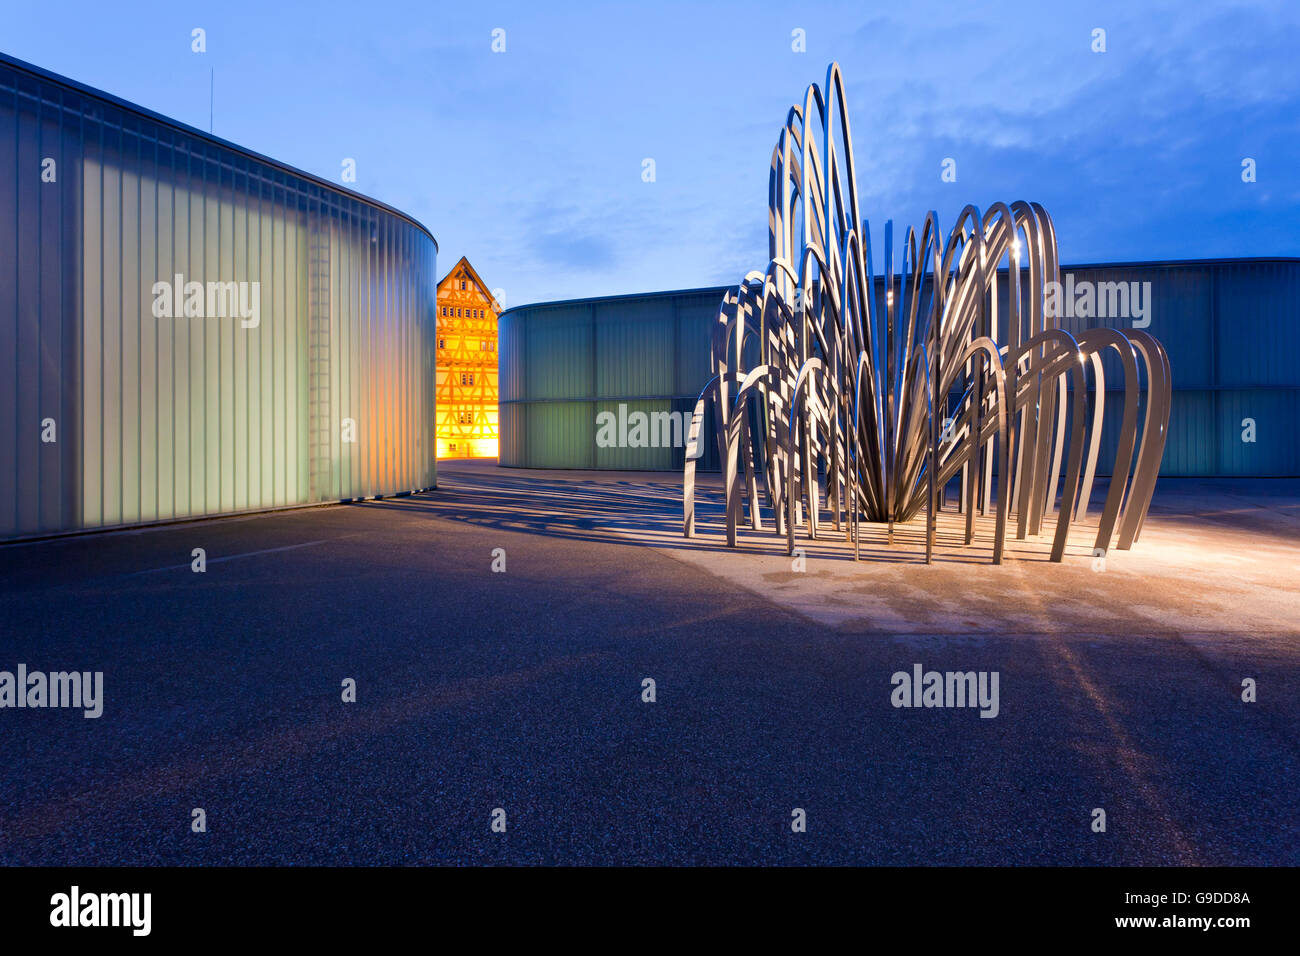 Stihl Galerie on the left, Kunstschule Unteres Remstal school of arts on the right, sculpture by Olafur Eliasson, - Stock Image